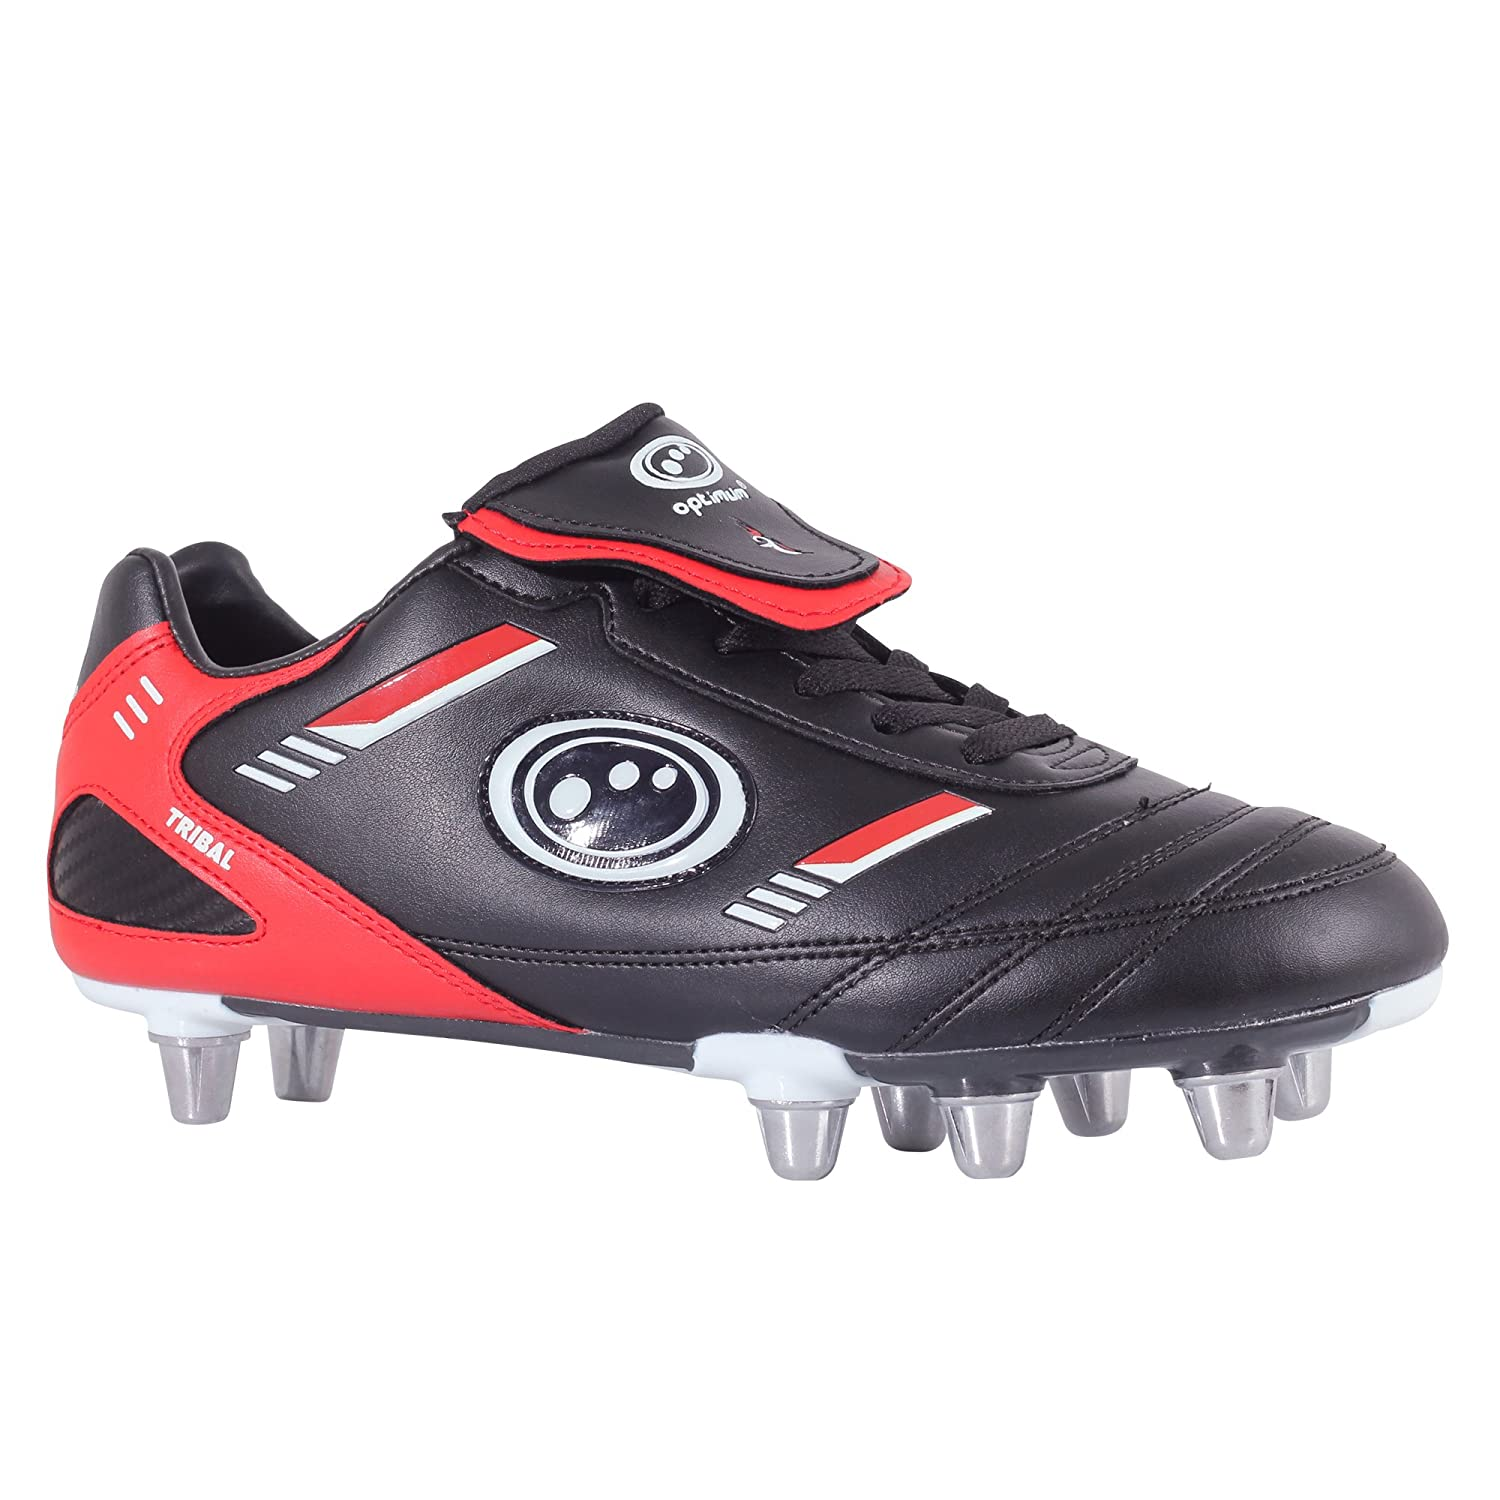 Optimum Mens RBTBRS7 Tribal Rugby Boots - Black/Red, 7 UK, 40 EU